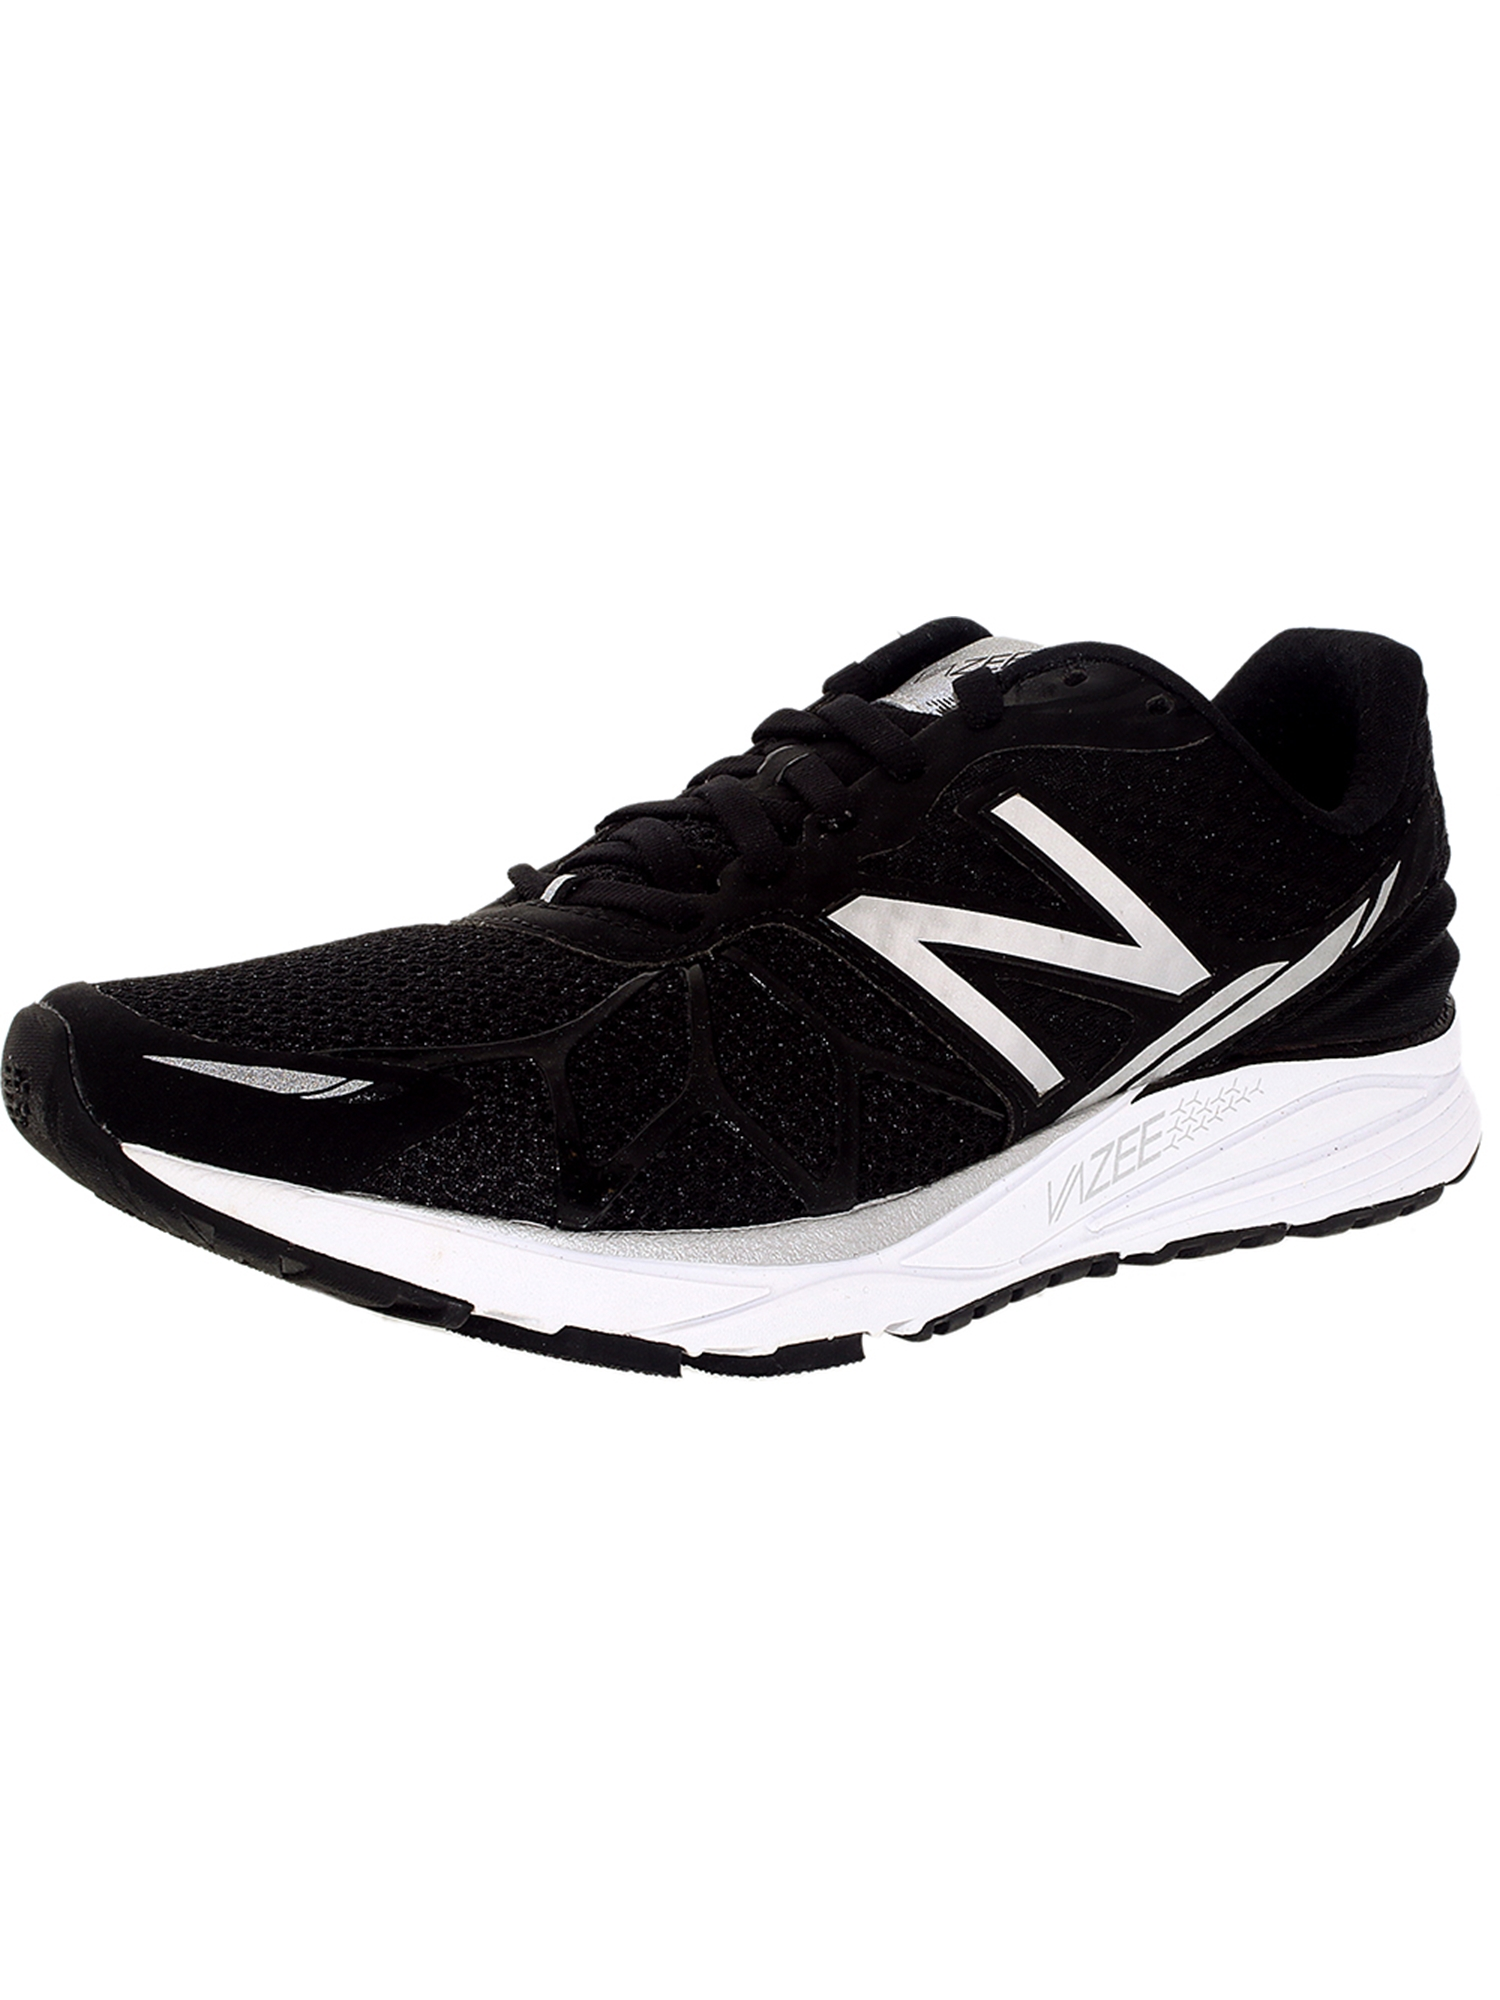 90d579f61e New Balance Men's Running Course Black/Silver/White Ankle-High Shoe - 11M